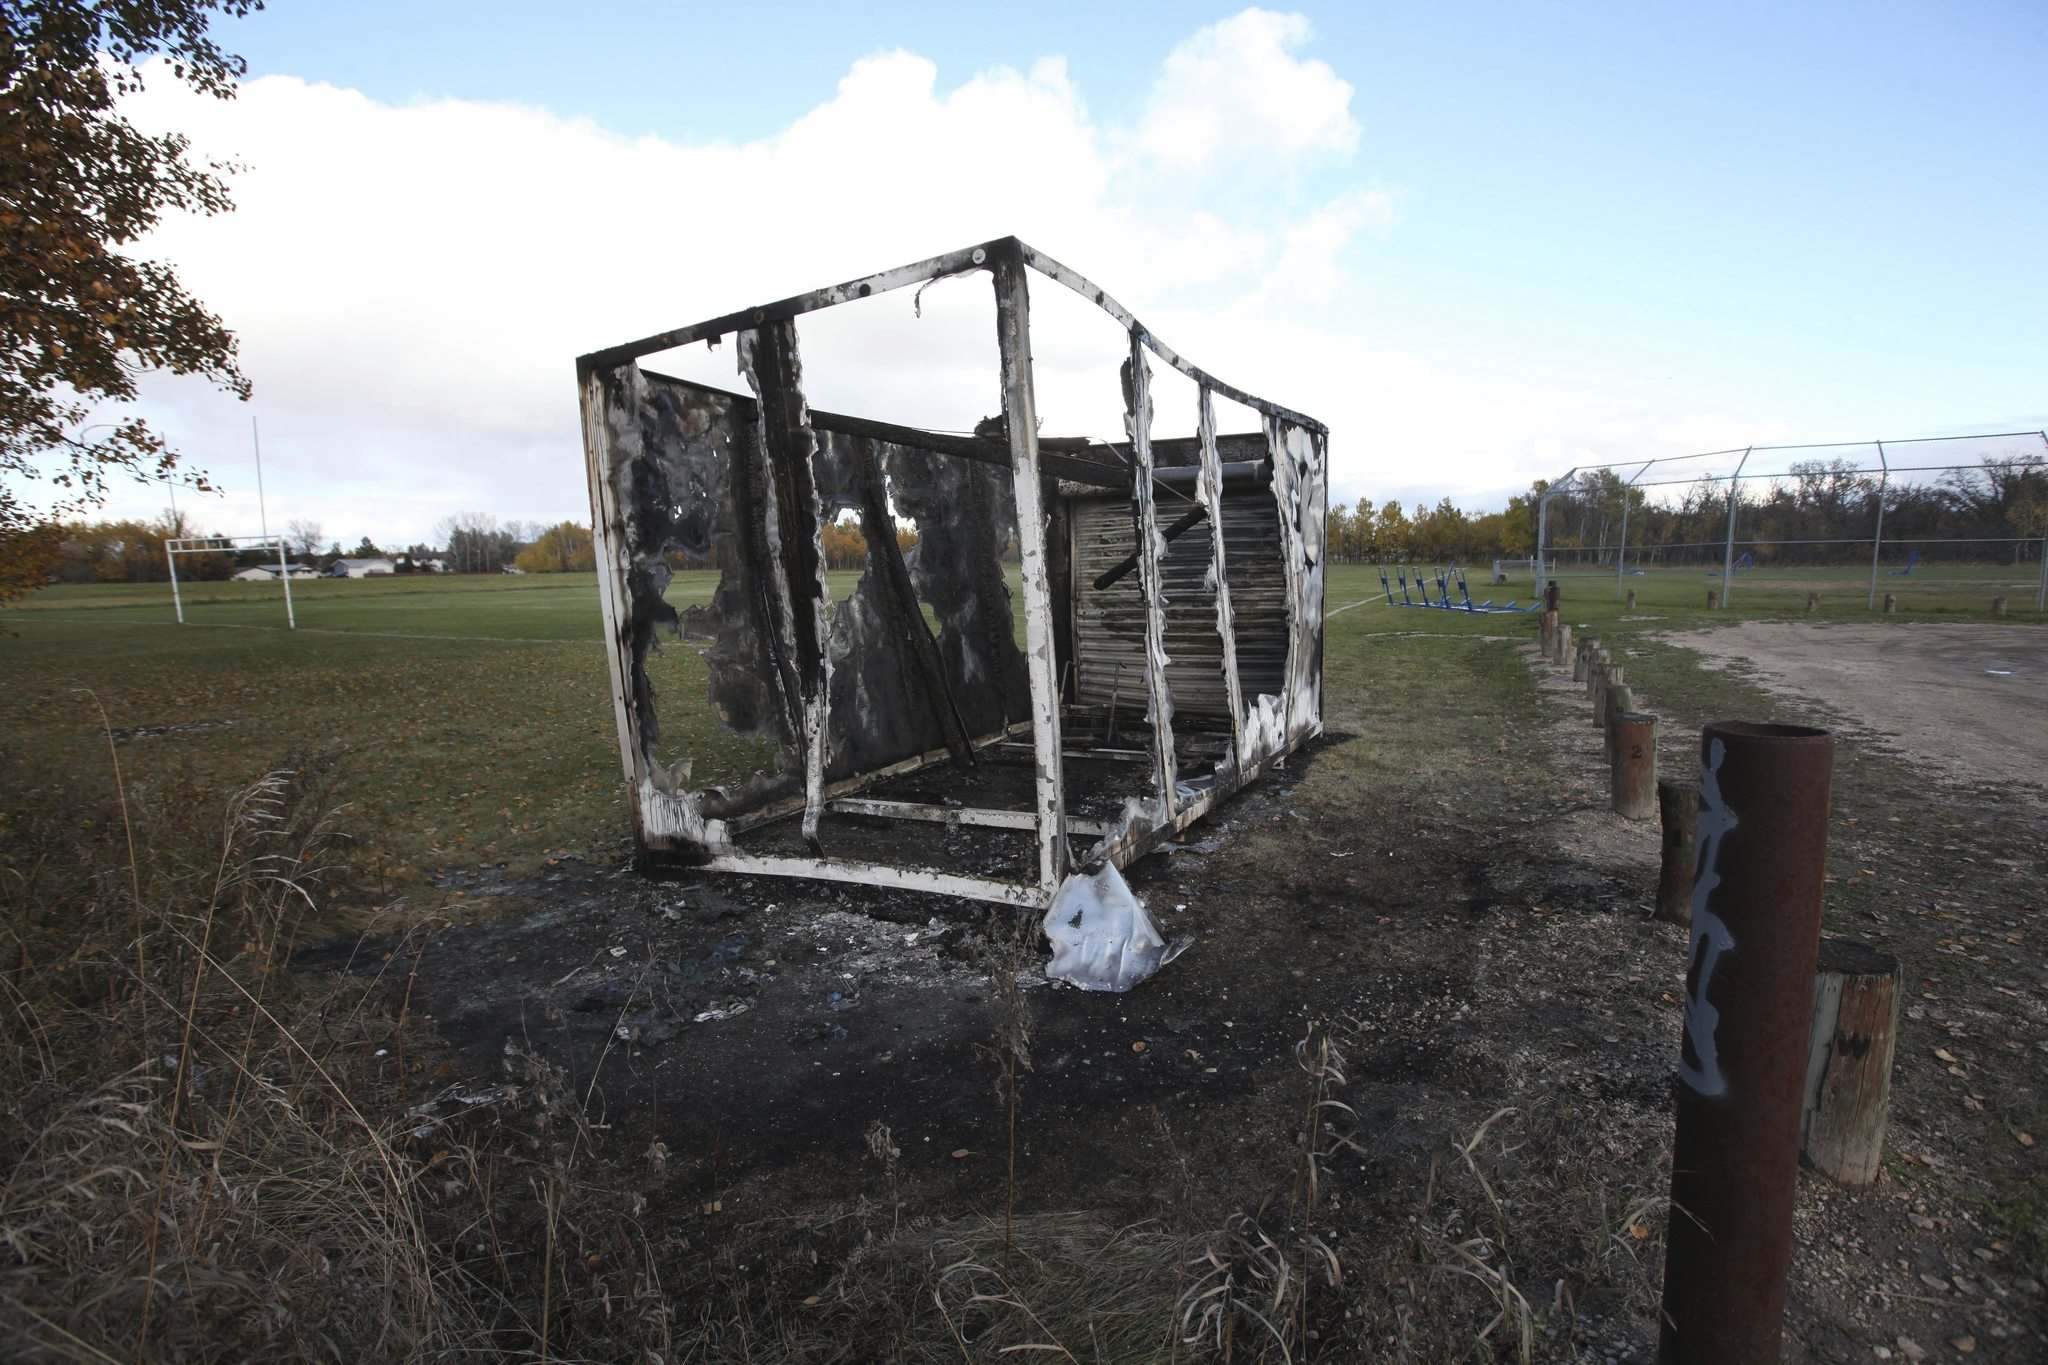 RUTH BONNEVILLE / WINNIPEG FREE PRESS</p><p>The Oak Park football team's equipment container at Fraser Meadows Park burned in what coach Stu Nixon believes was an act of arson.</p></p>